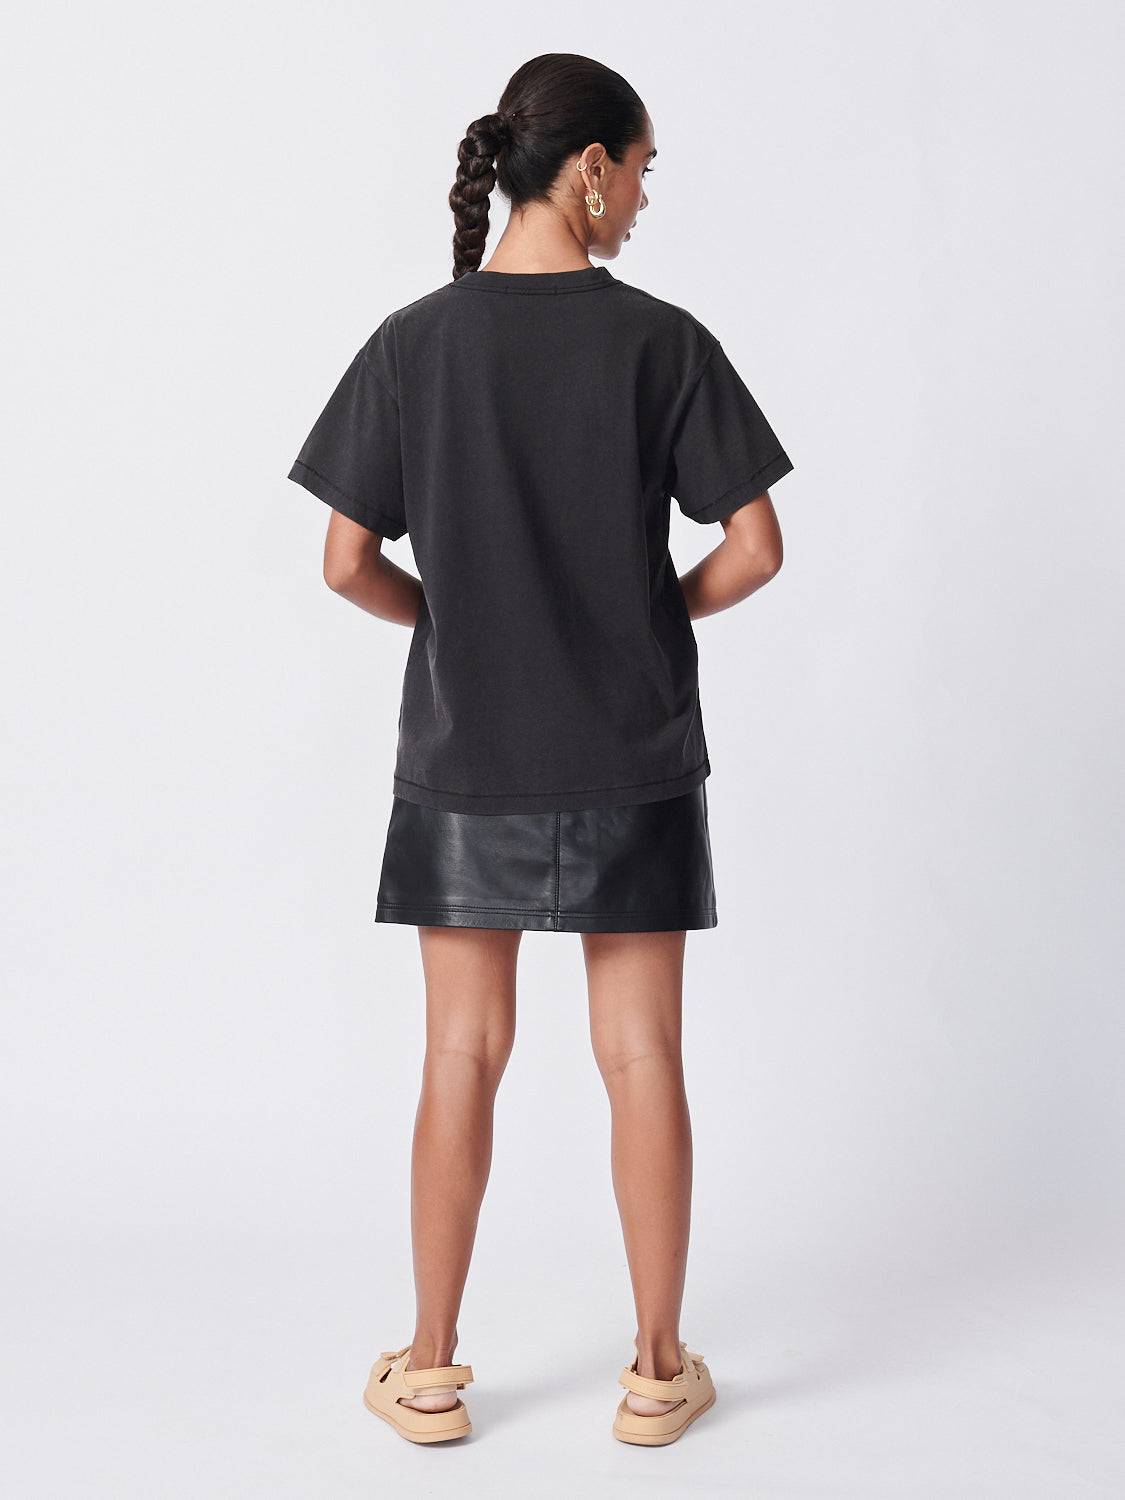 Snake Eyes Tee - Washed Black